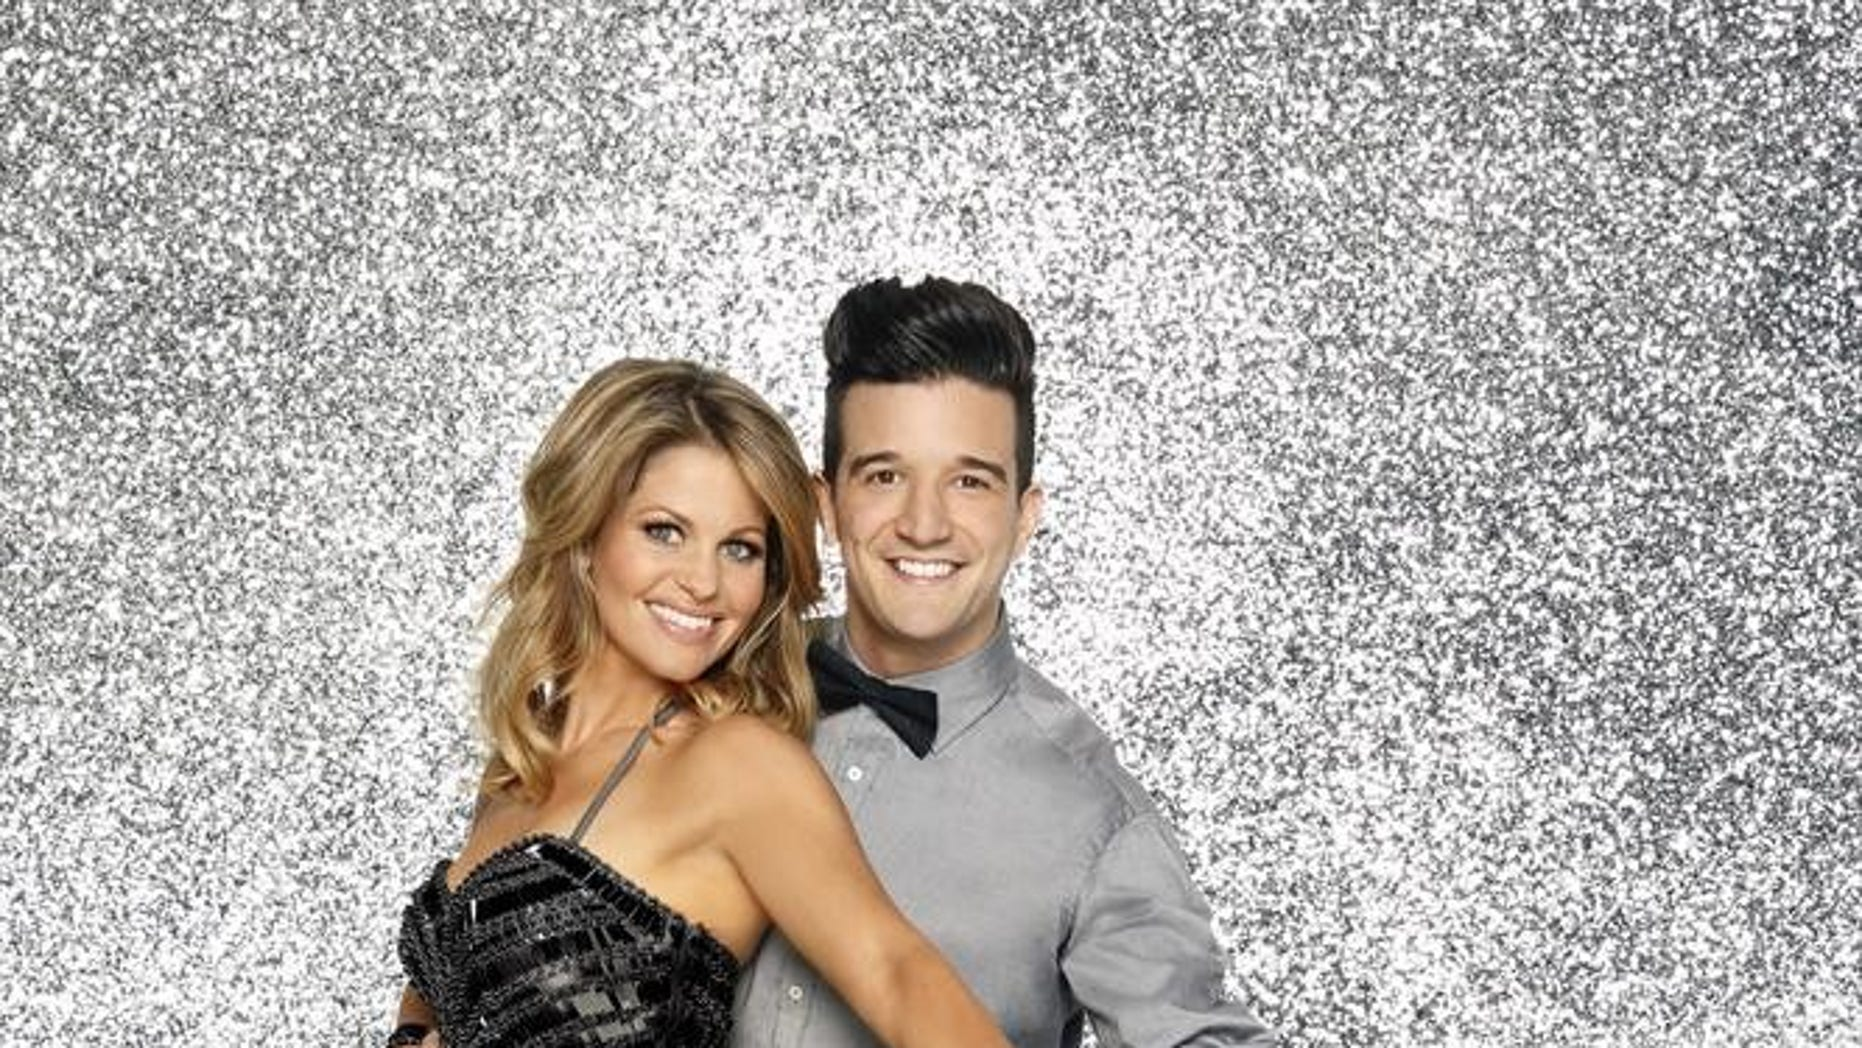 Candace Cameron Bure partners with Mark Ballas on 'Dancing with the Stars.'